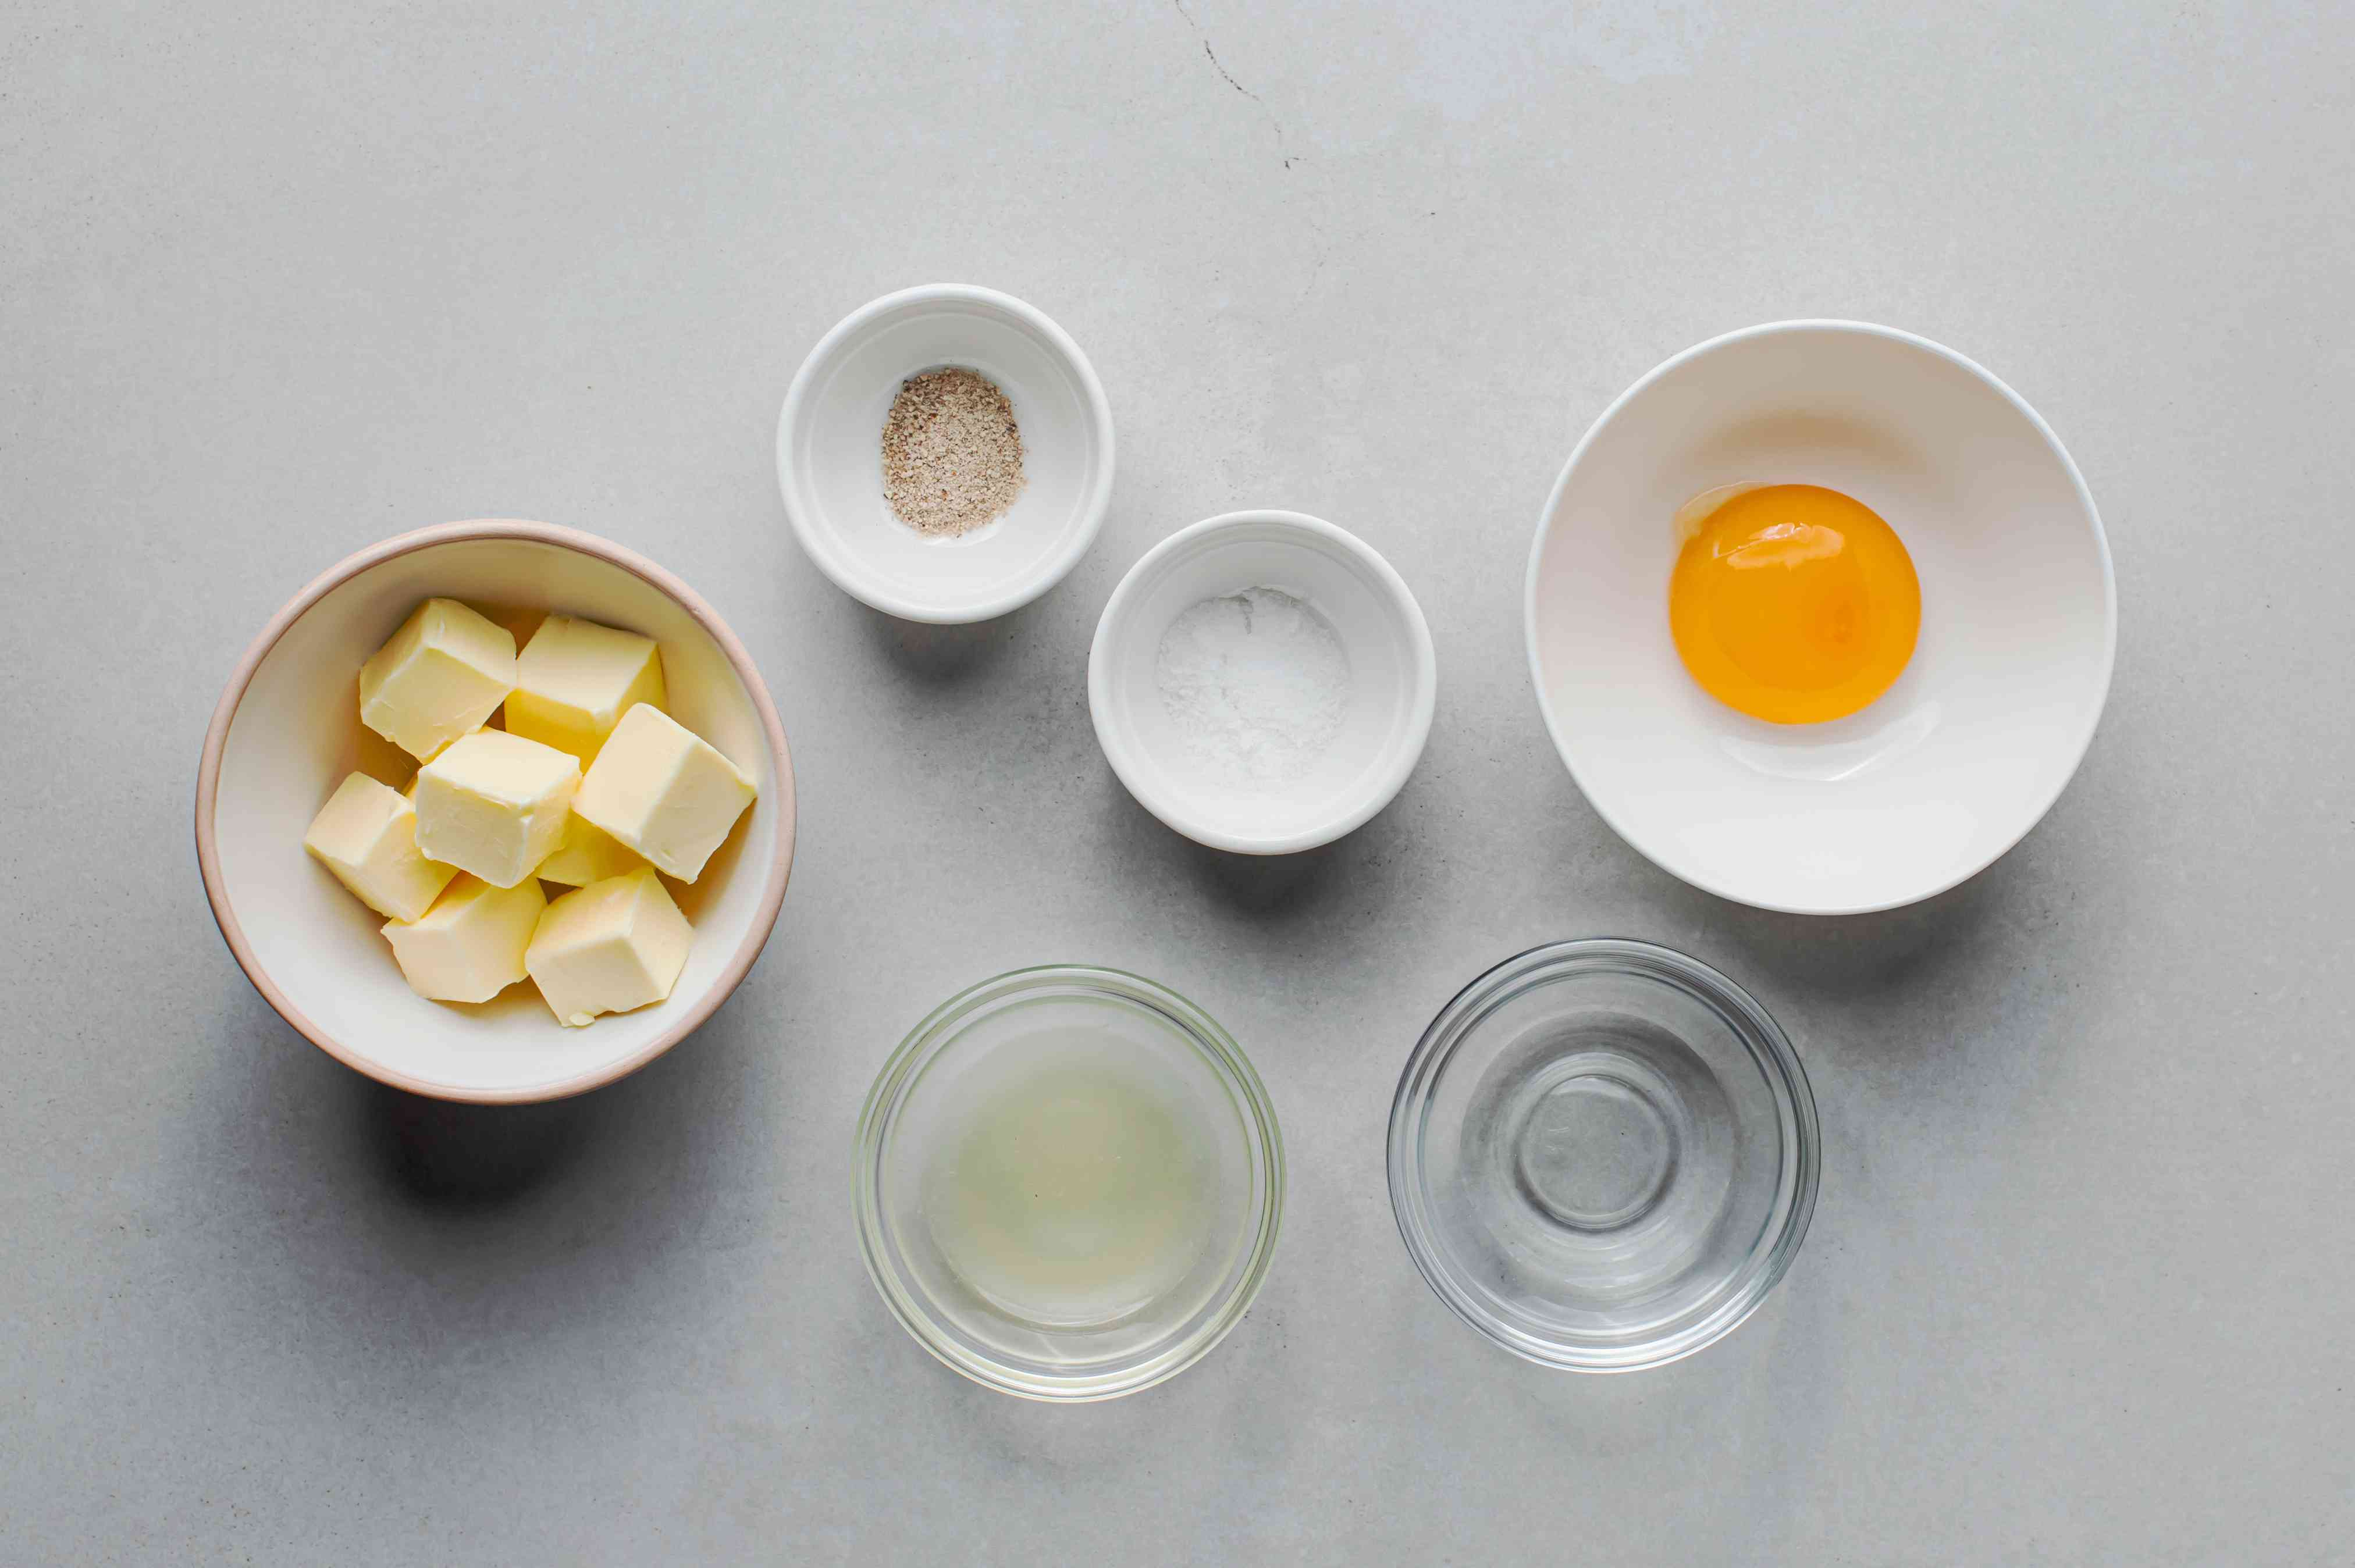 Hollandaise sauce with butter ingredients